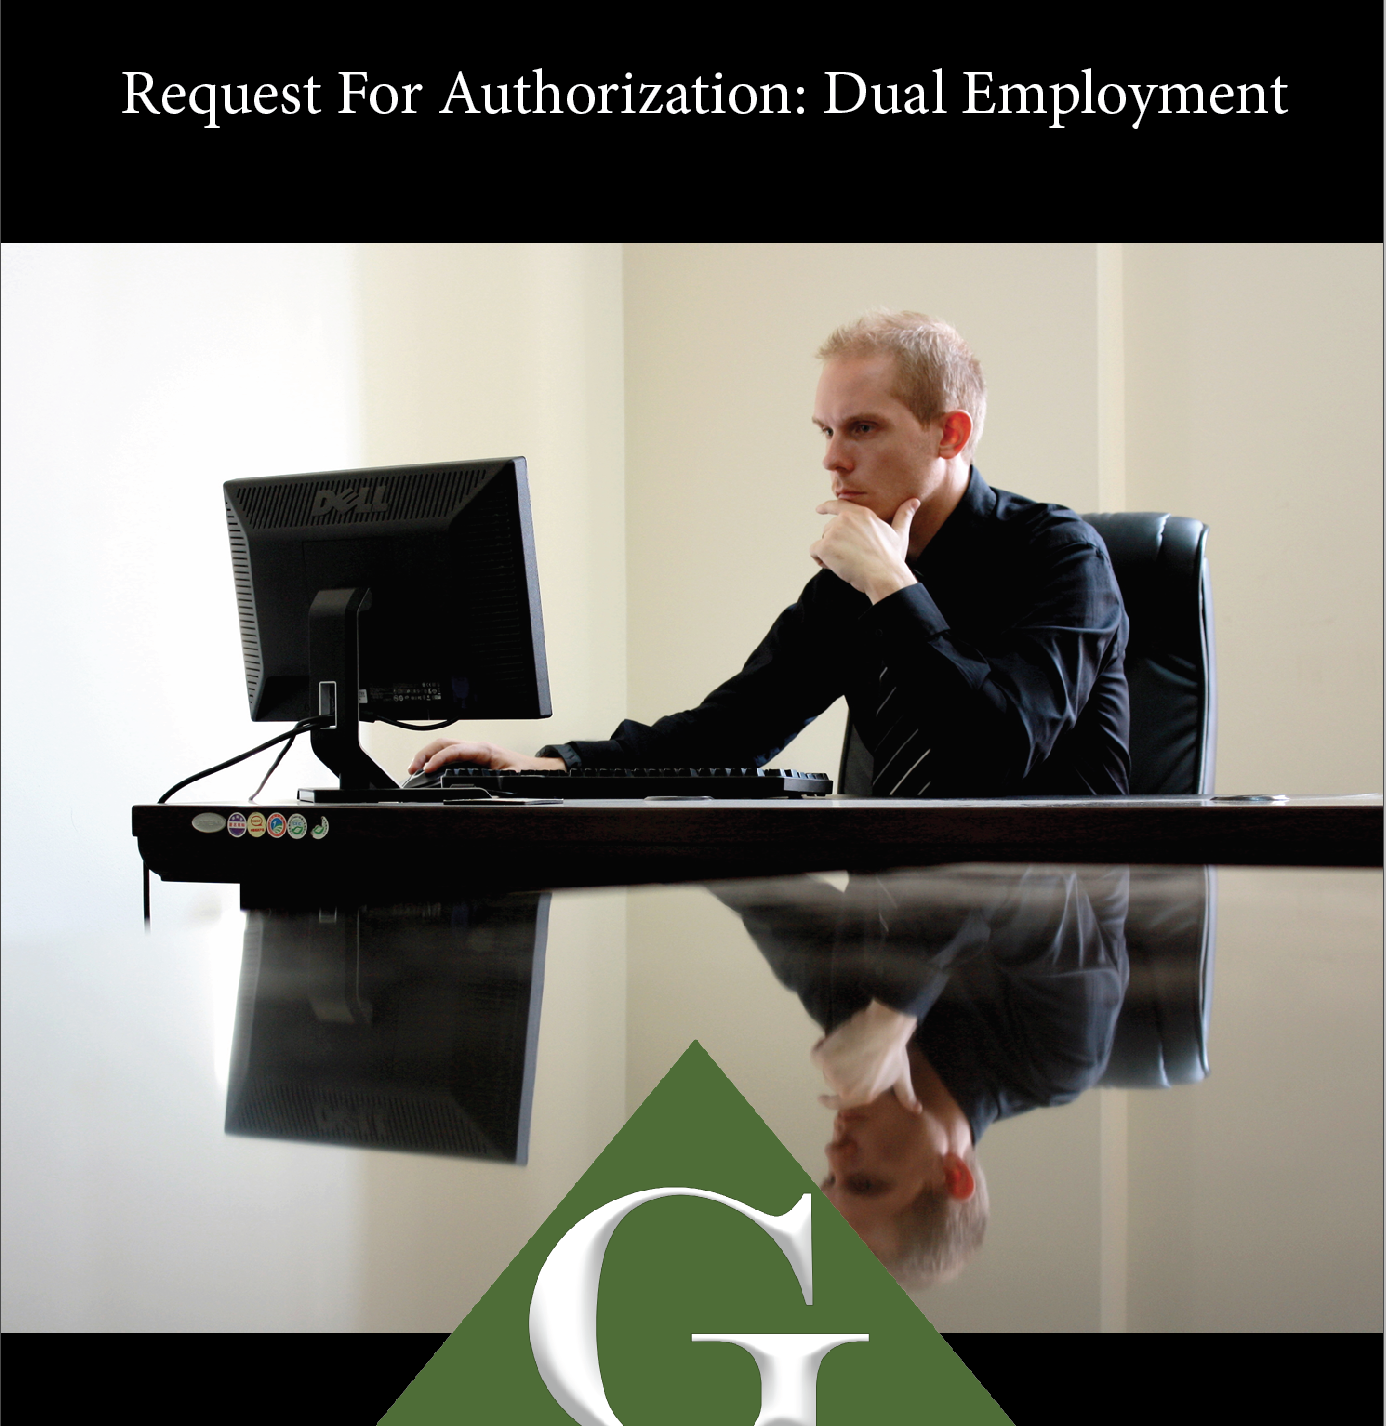 Request for Dual Employment